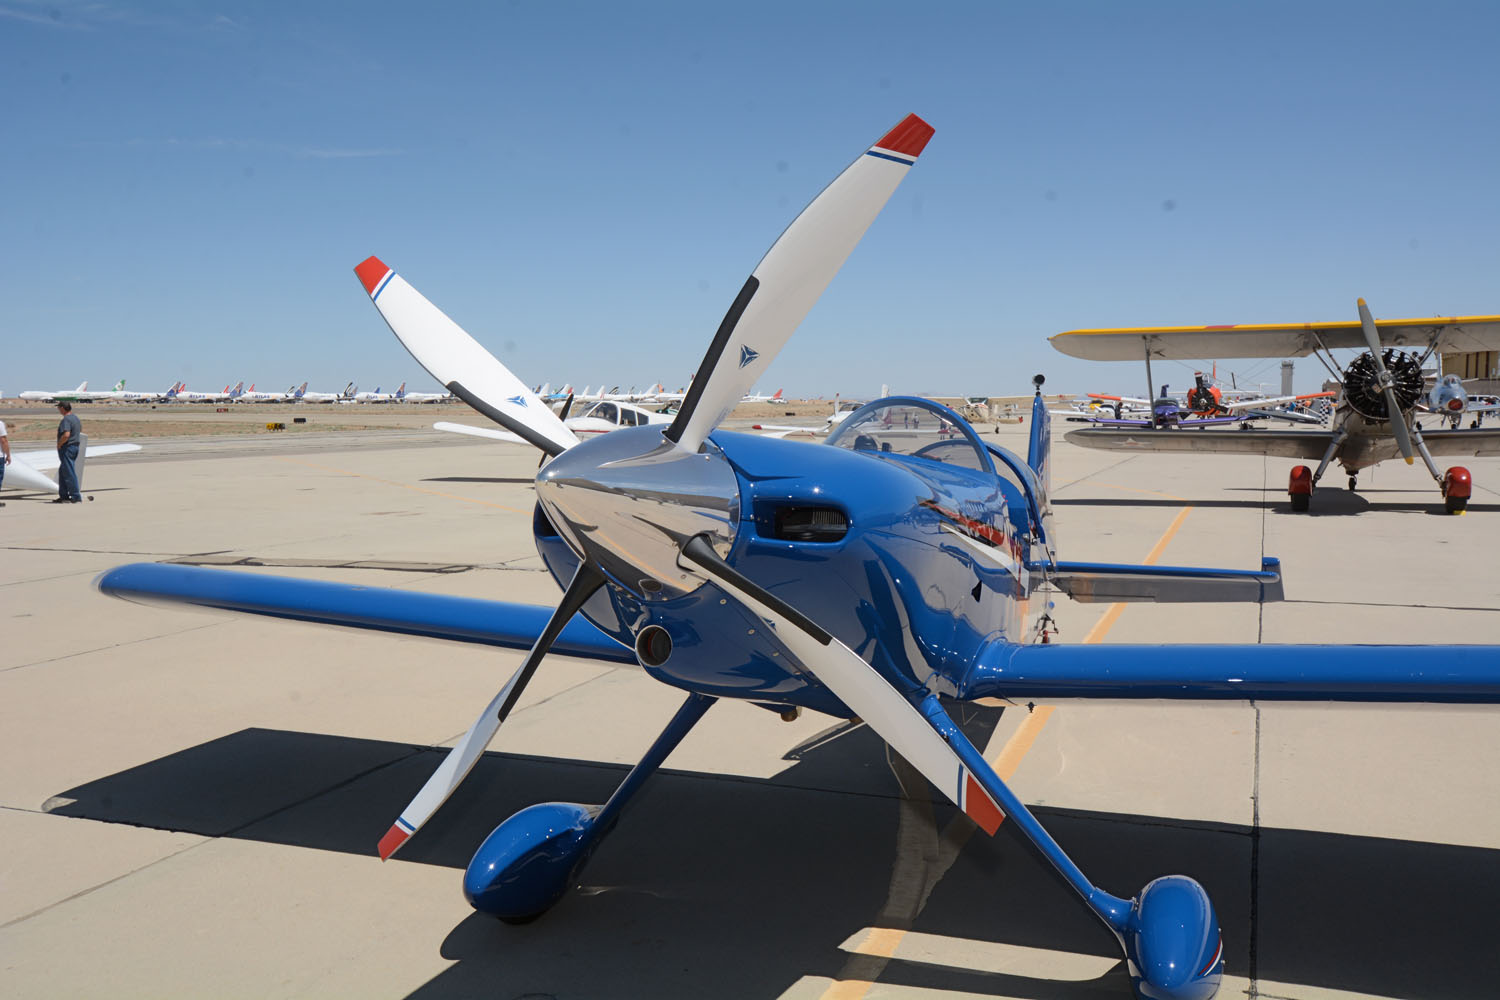 It's the 4-blade MT prop on Mark Swaney's Team Rocket F1 that everyone notices, but the rest of the plane is a lot of fun, too. Mark reports a